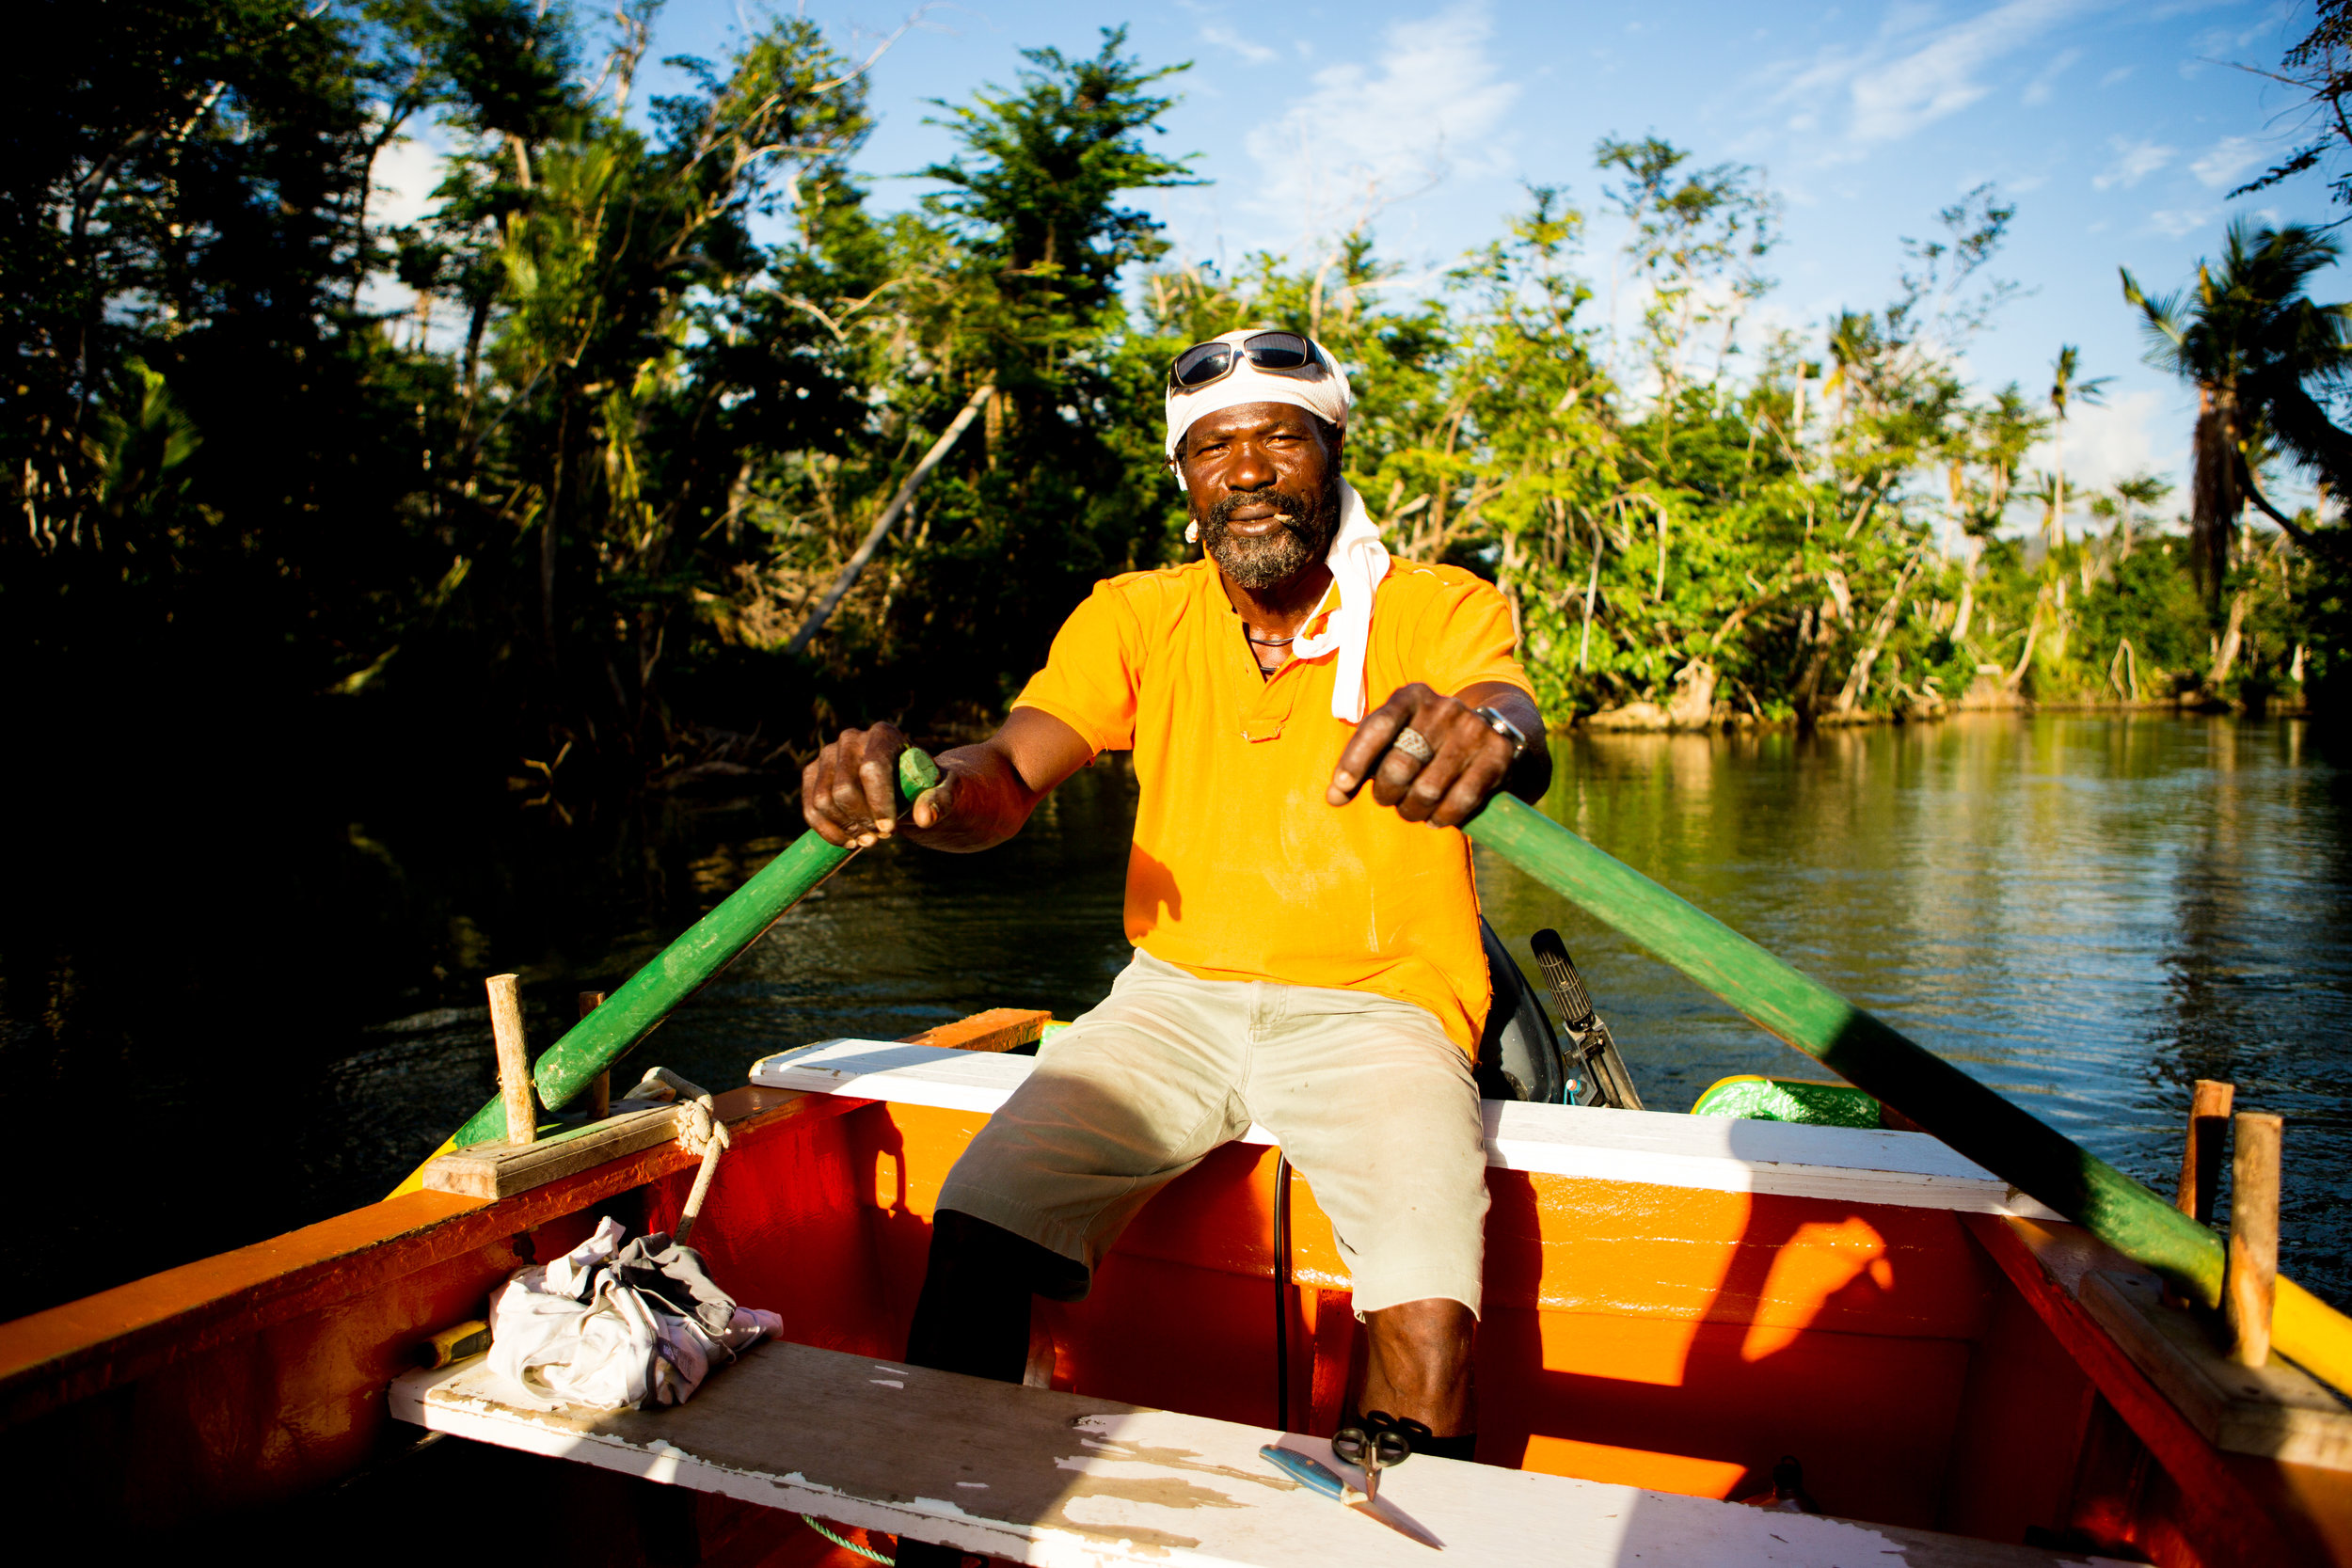 Titus, The Glorious 5:15 AM In The Morning Pirate, took us on the most EPIC Indian River Tour possible!